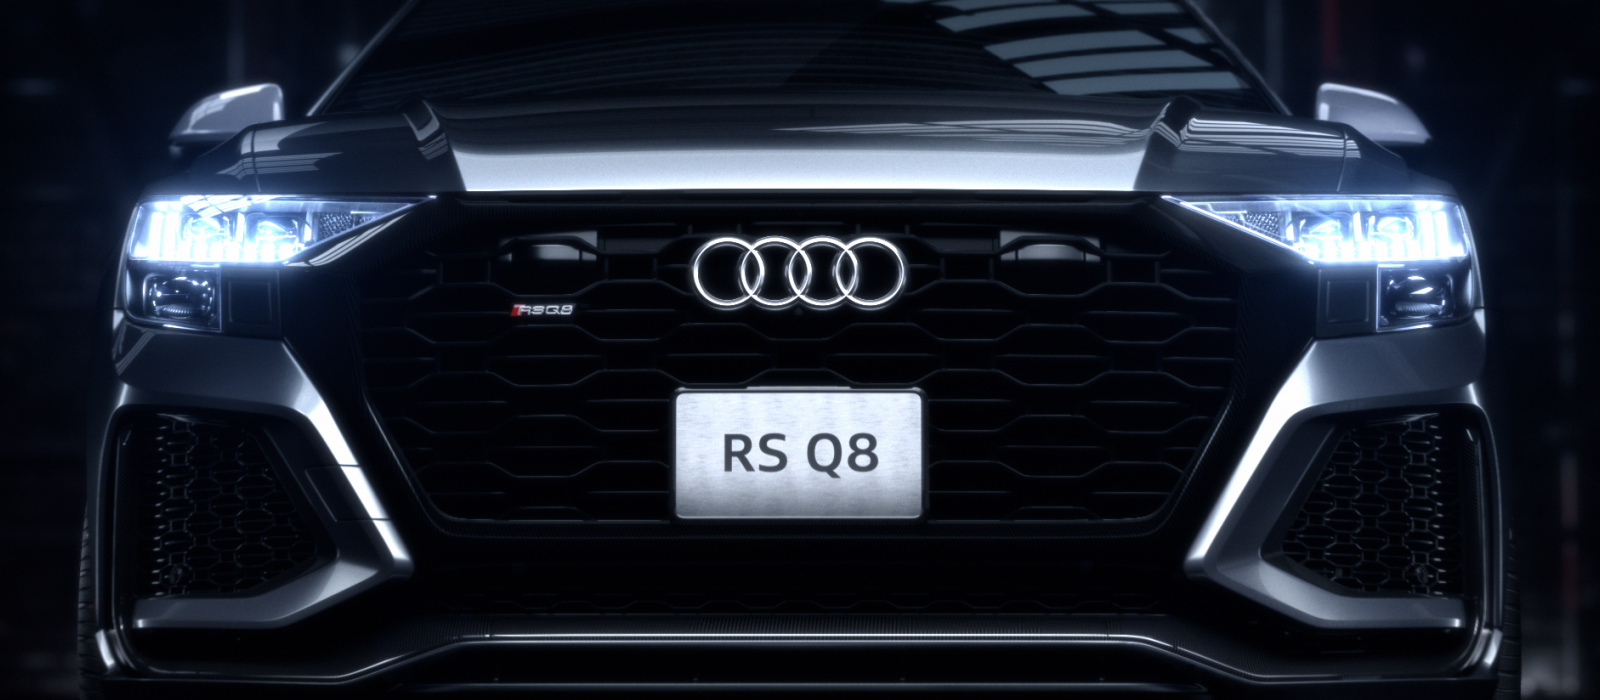 THE ART OF SPEED – AUDI RS Q8